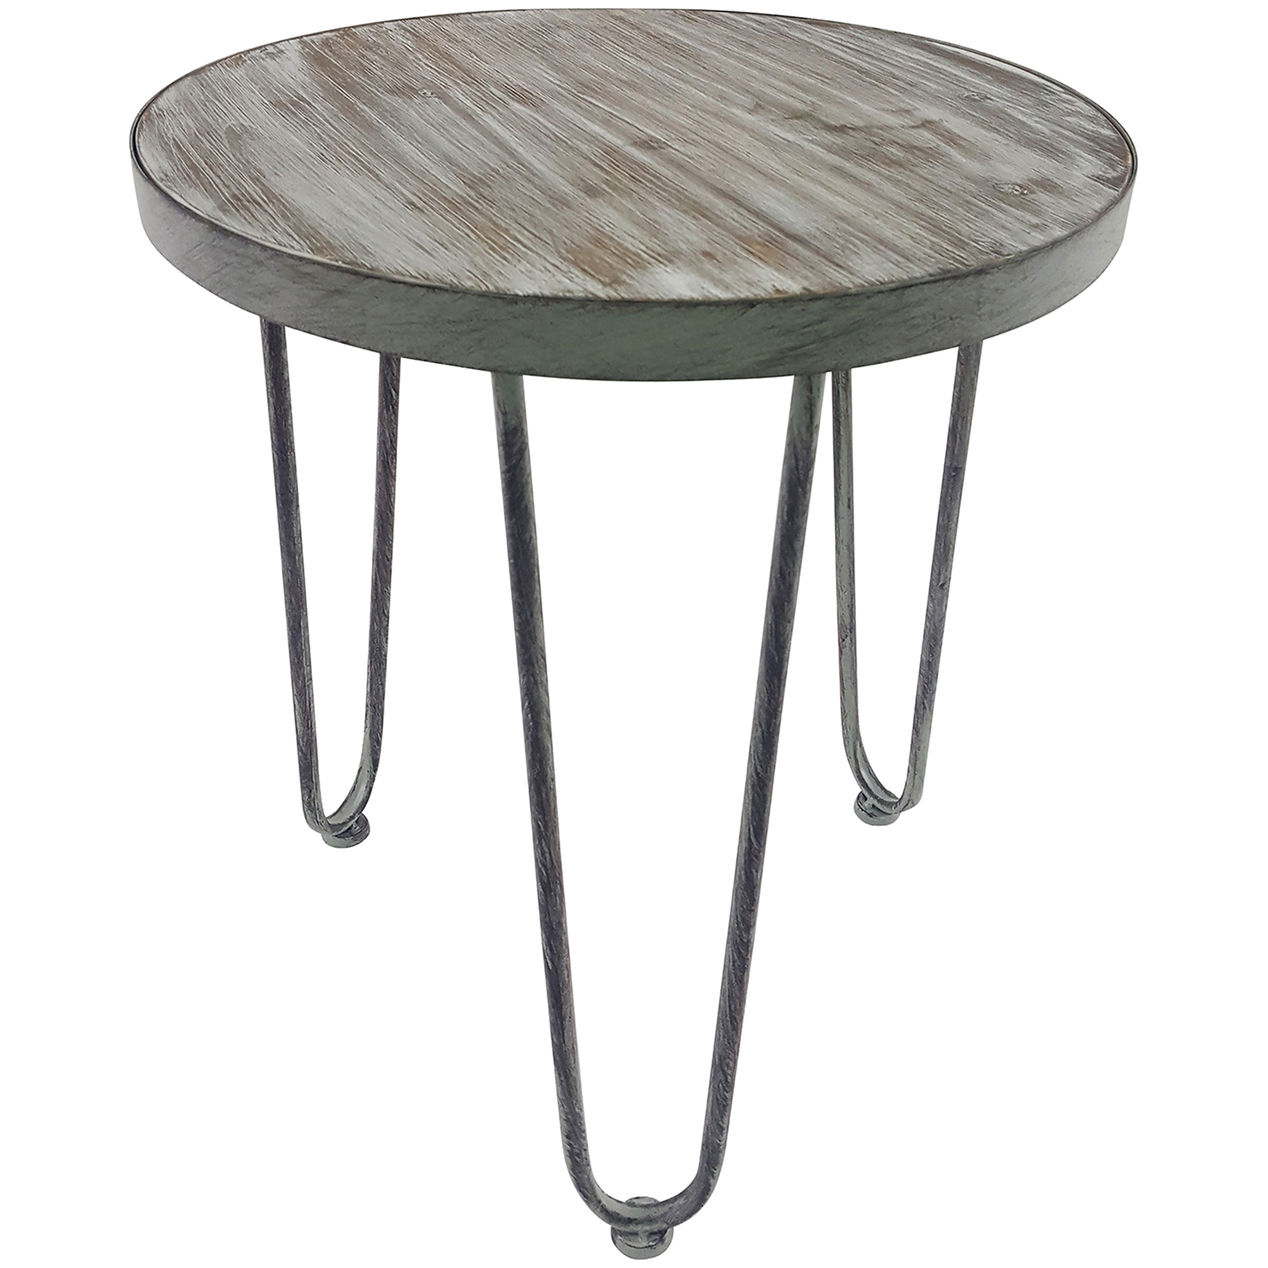 wood sidetable gray home outdoor side table with bbq built changing dimensions uttermost round accent door designs for rooms silver mirror maple dining room furniture ashley